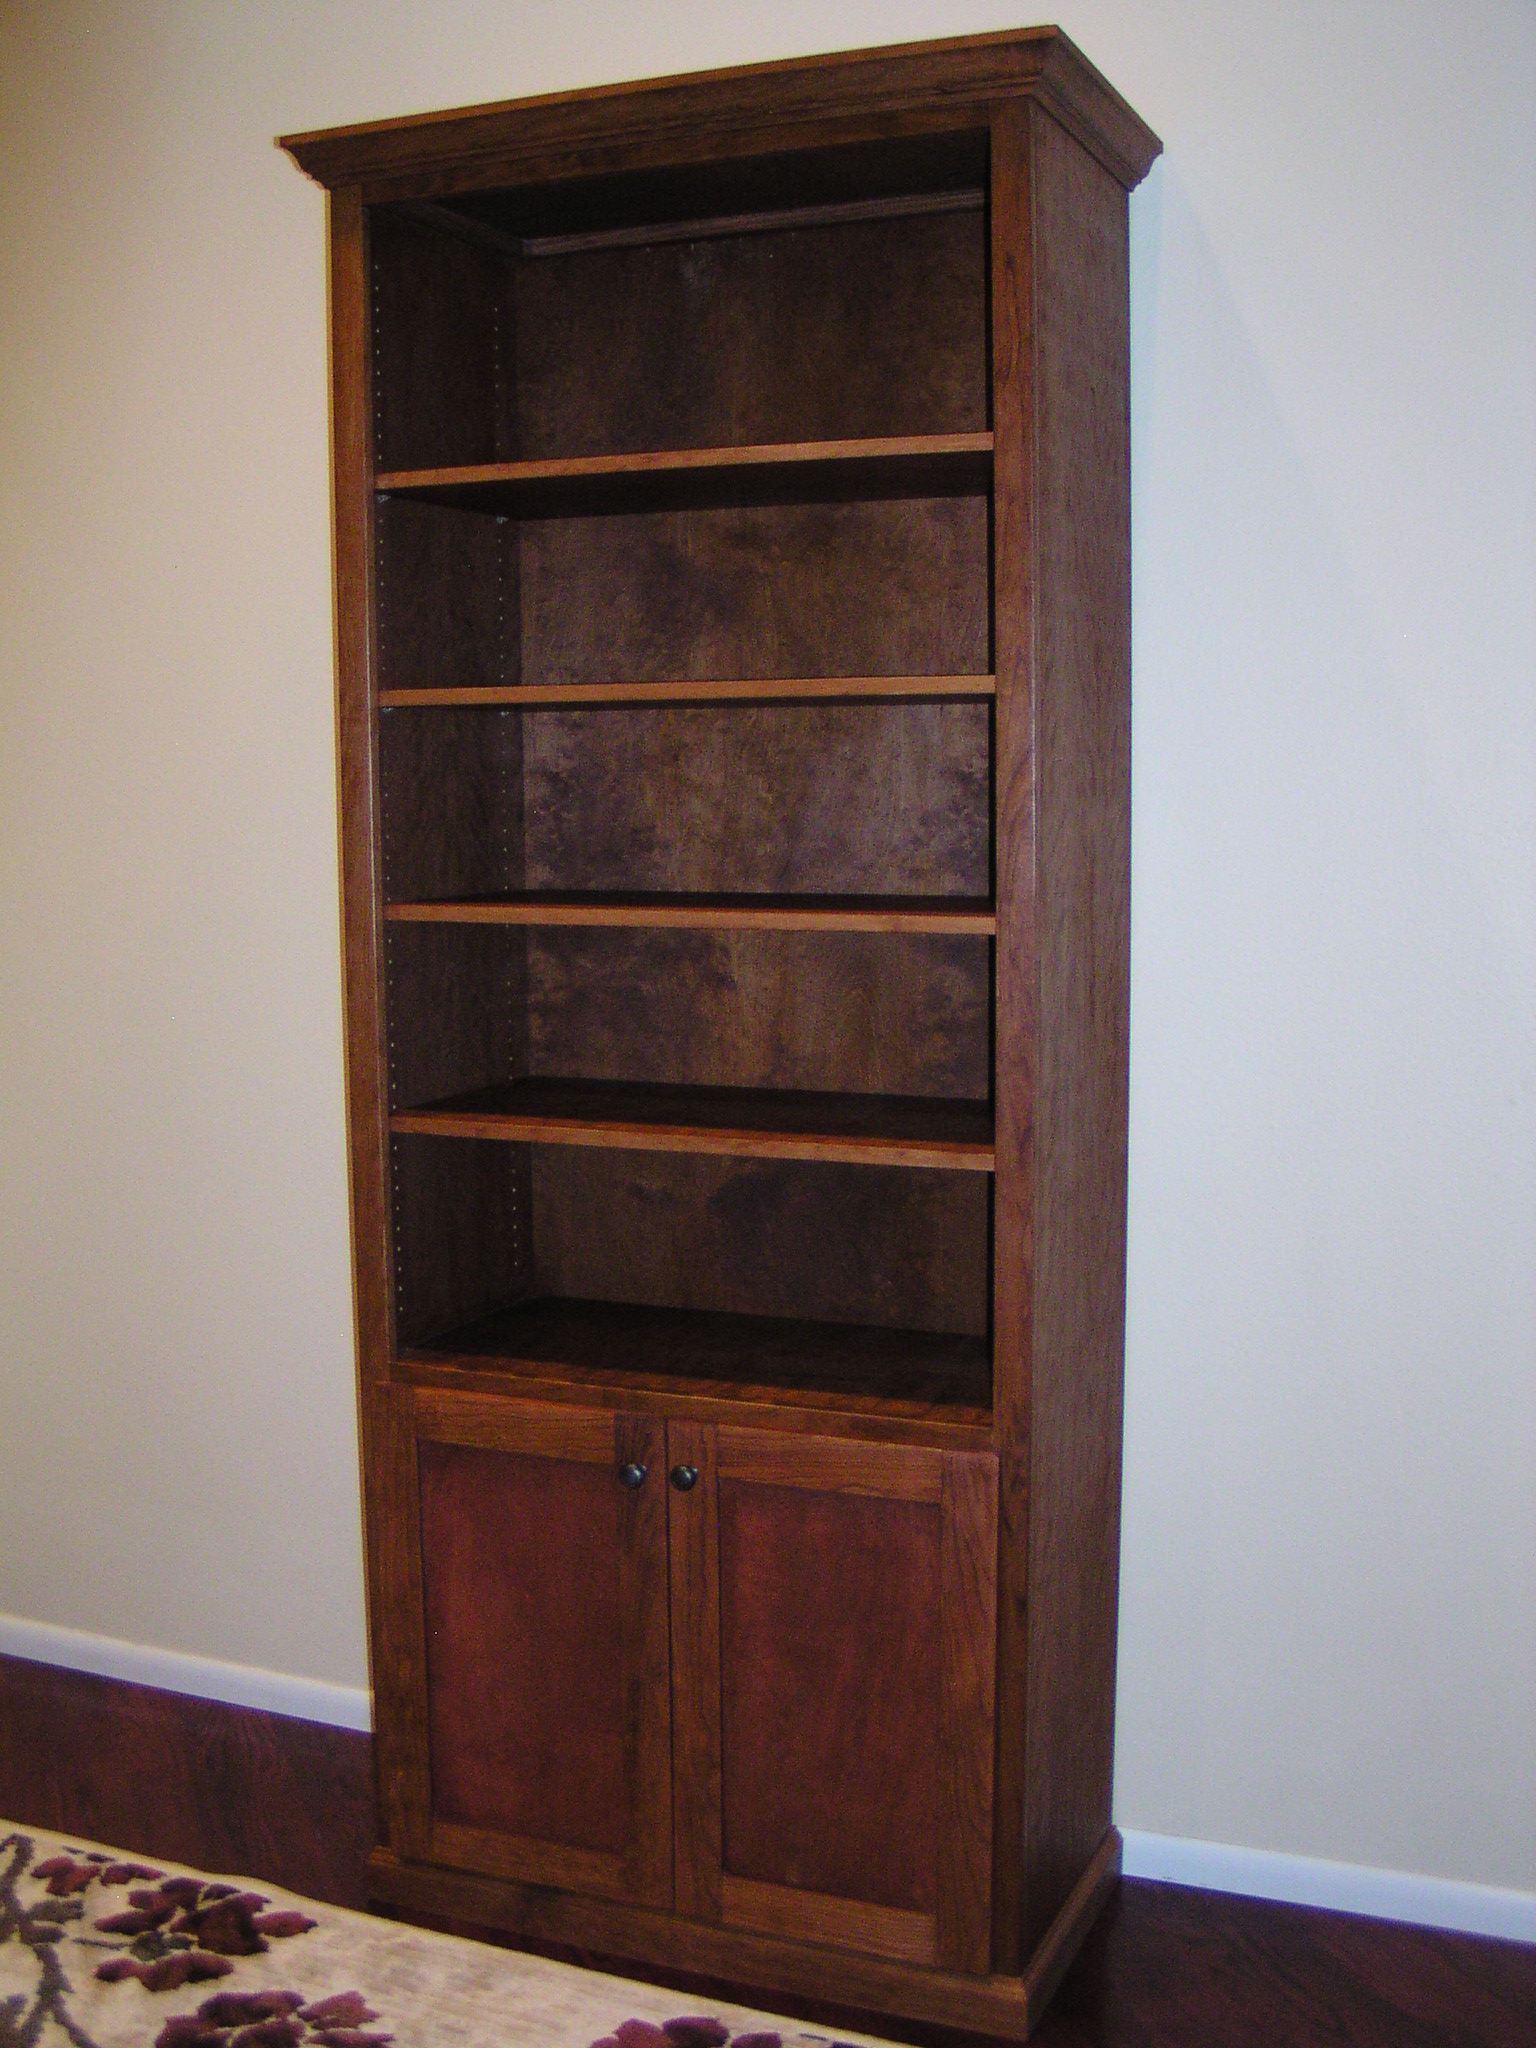 Superieur This Cherry Bookcase Provides For Storage In The Base And Adjustable Shelves  Above To Display Books